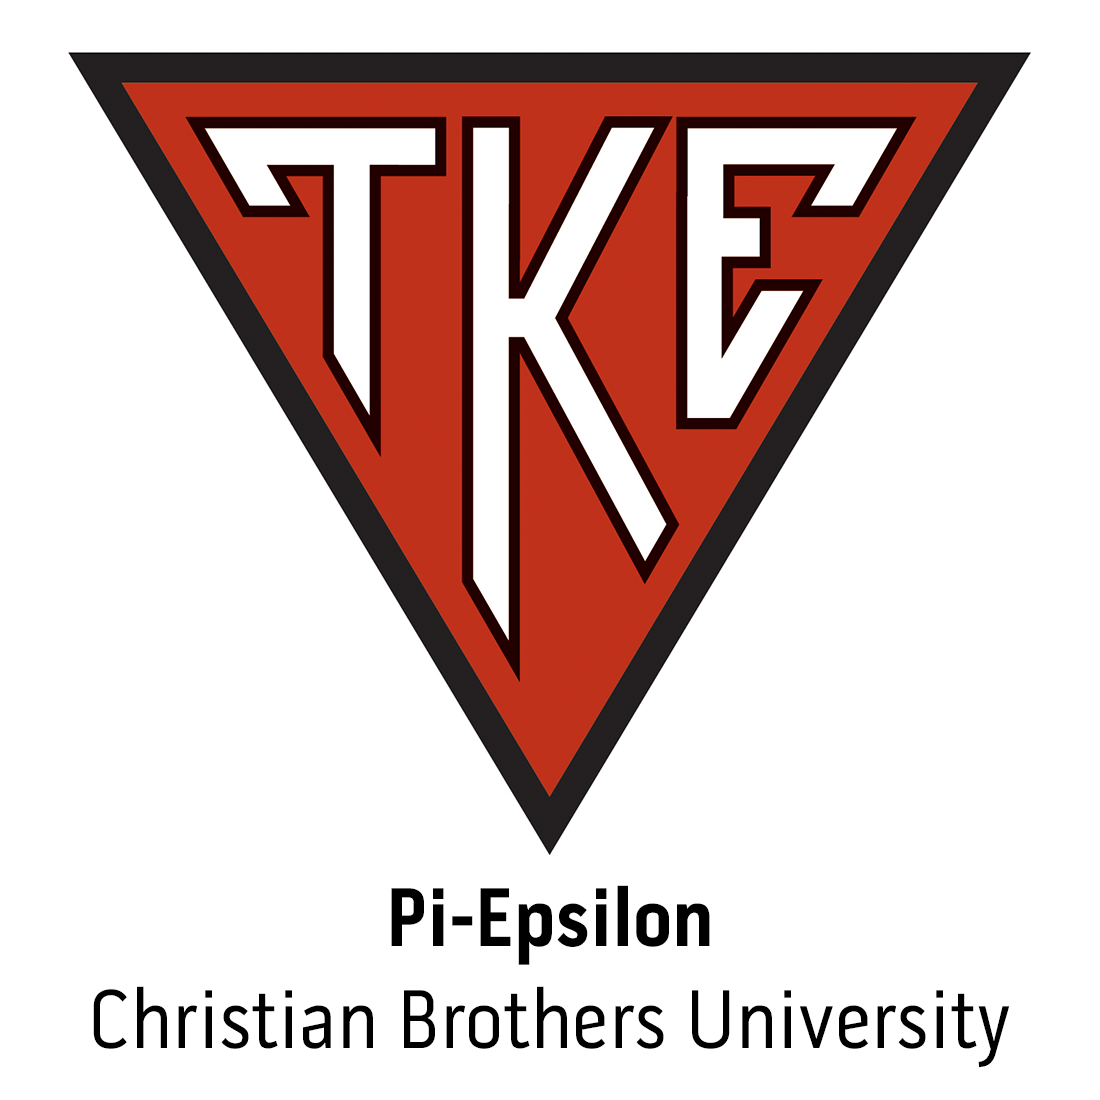 Pi-Epsilon Chapter at Christian Brothers University